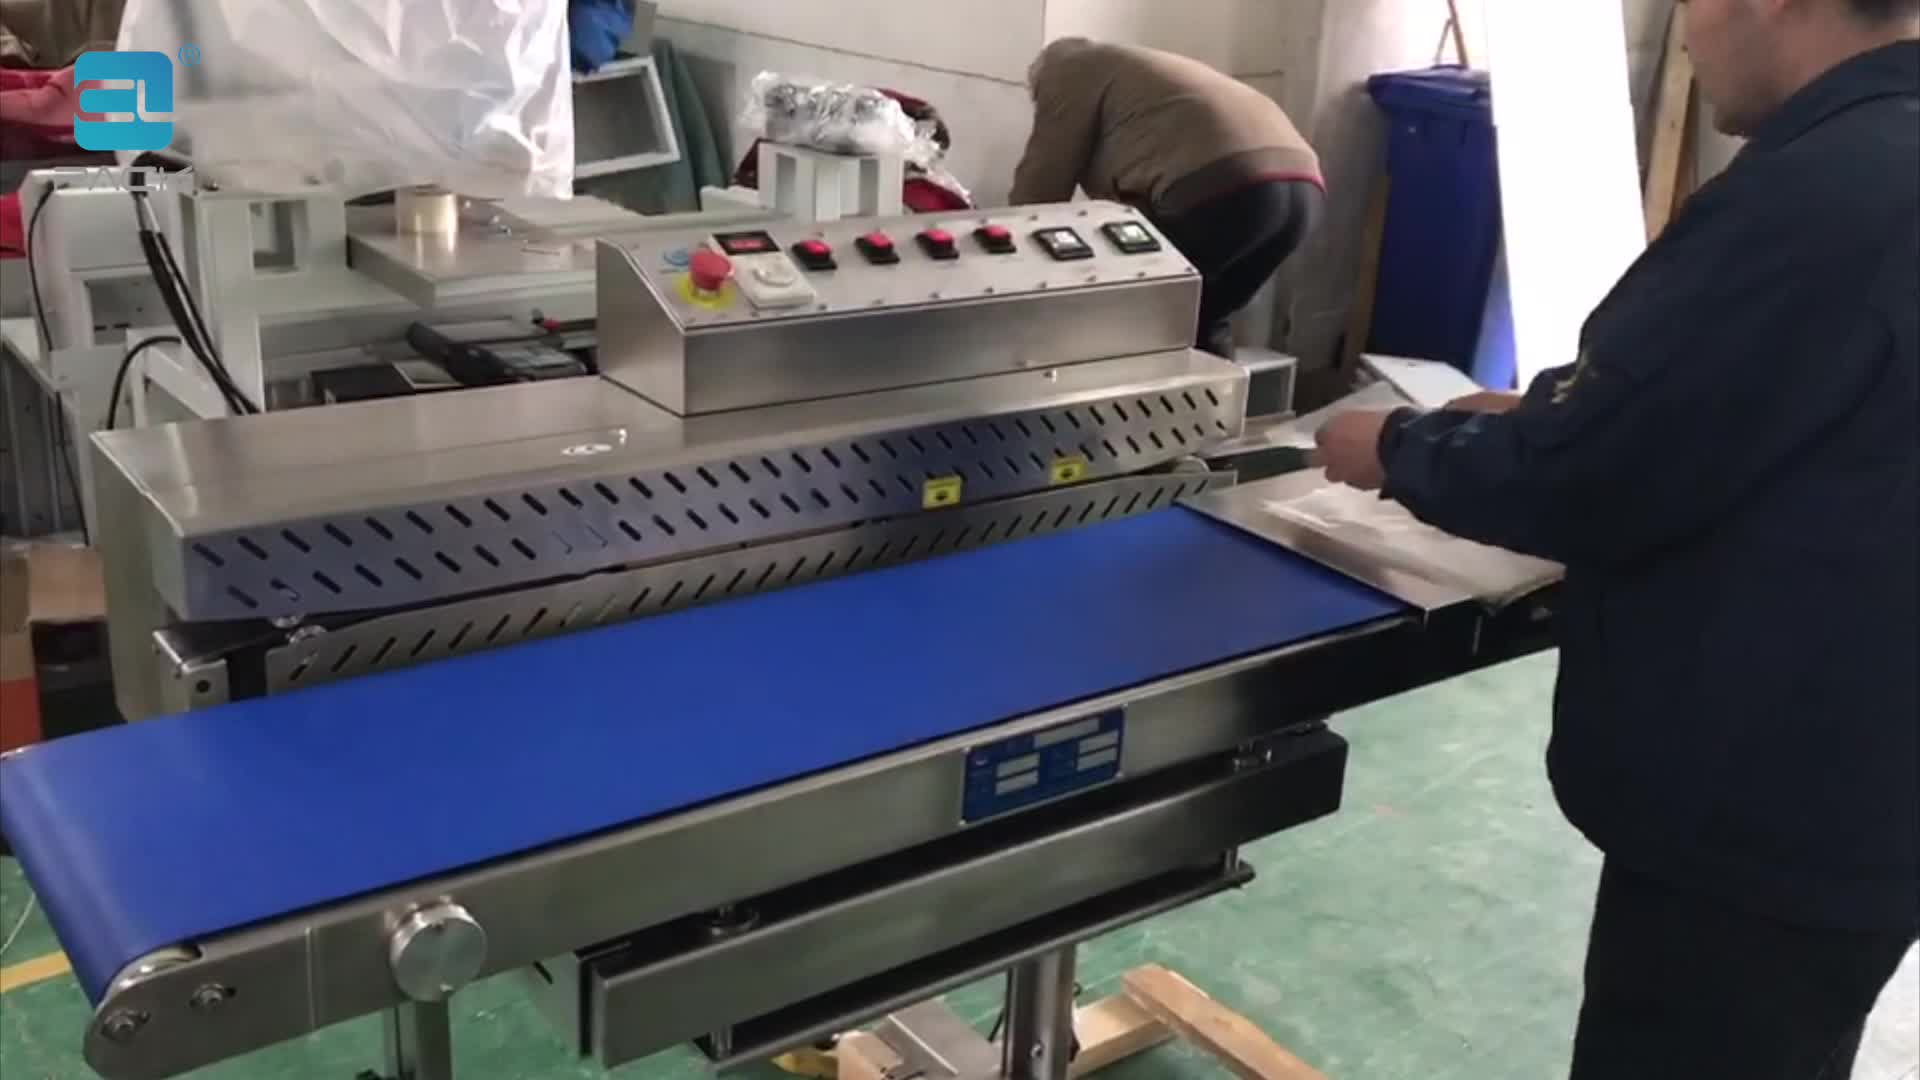 FRK-1520S Automatic Continuous Sealing Machine for Plastic Bags CLPACK